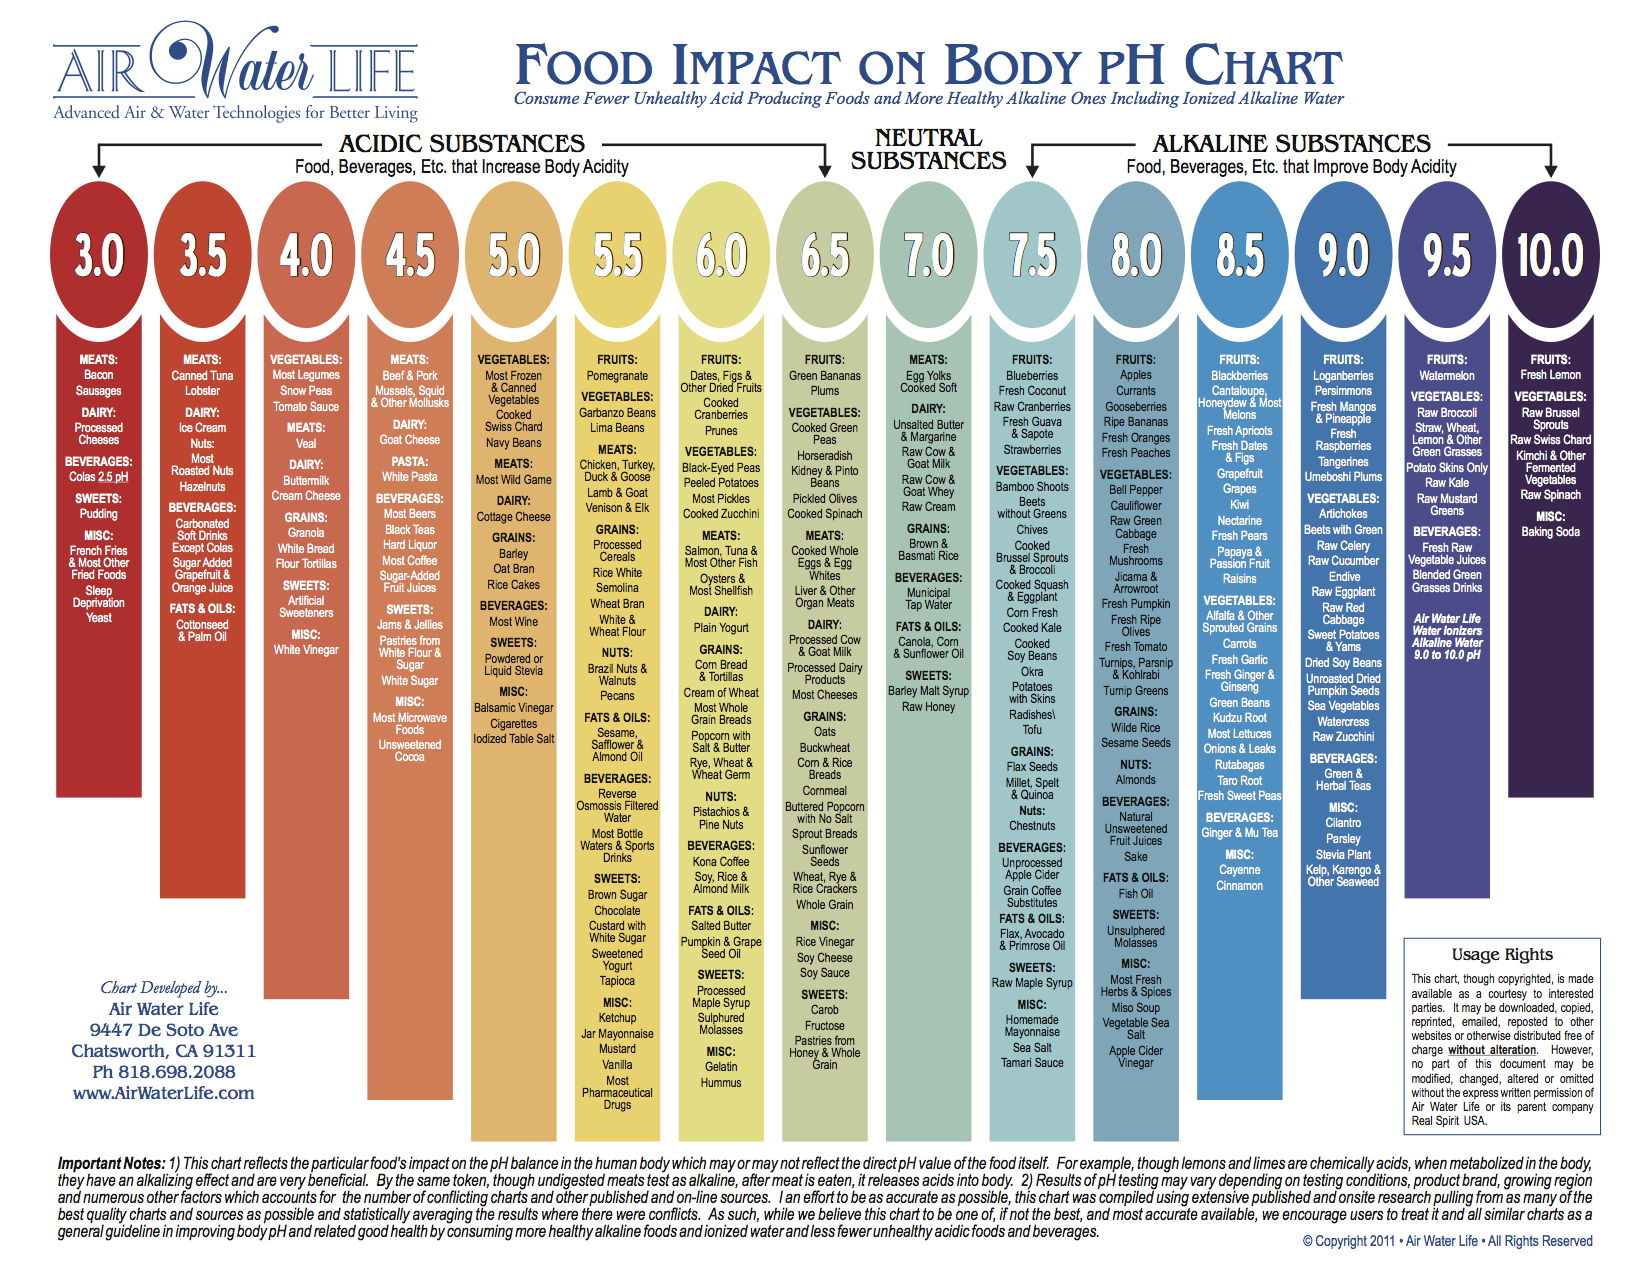 Alkaline vs Acidic Food Chart